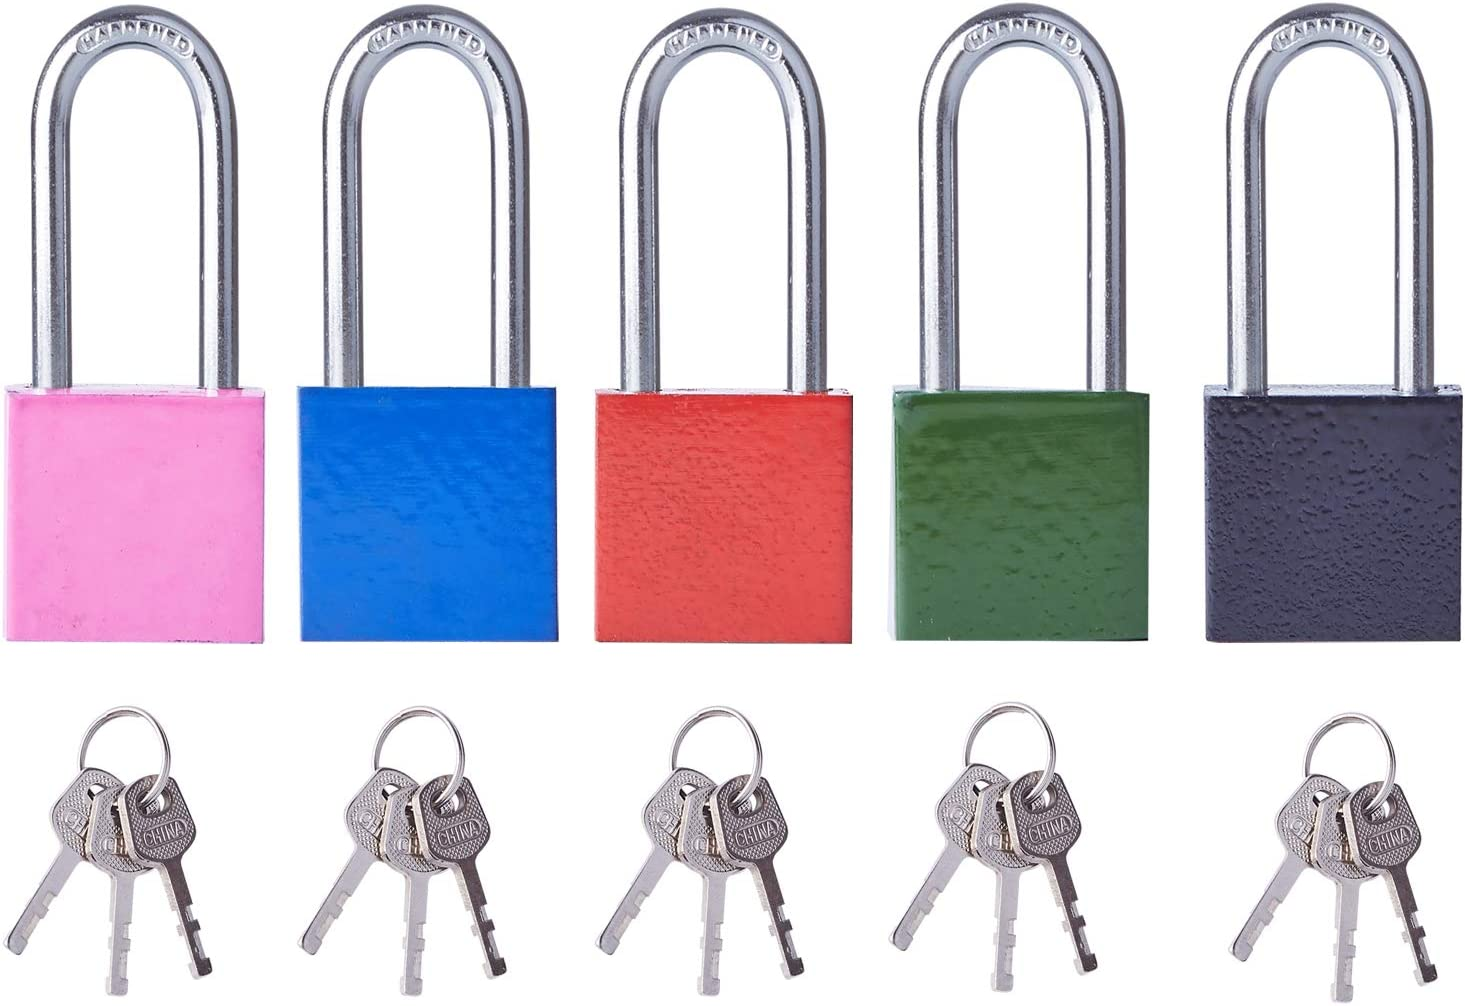 Key Lock (Pack of 5 Colors) 30 mm - Long Shackle Individually Keyed Locks, Padlock with 3 Keys for School & Home Exterior Gates, Sheds, Lockers, Tool Box, Warehouse and More!